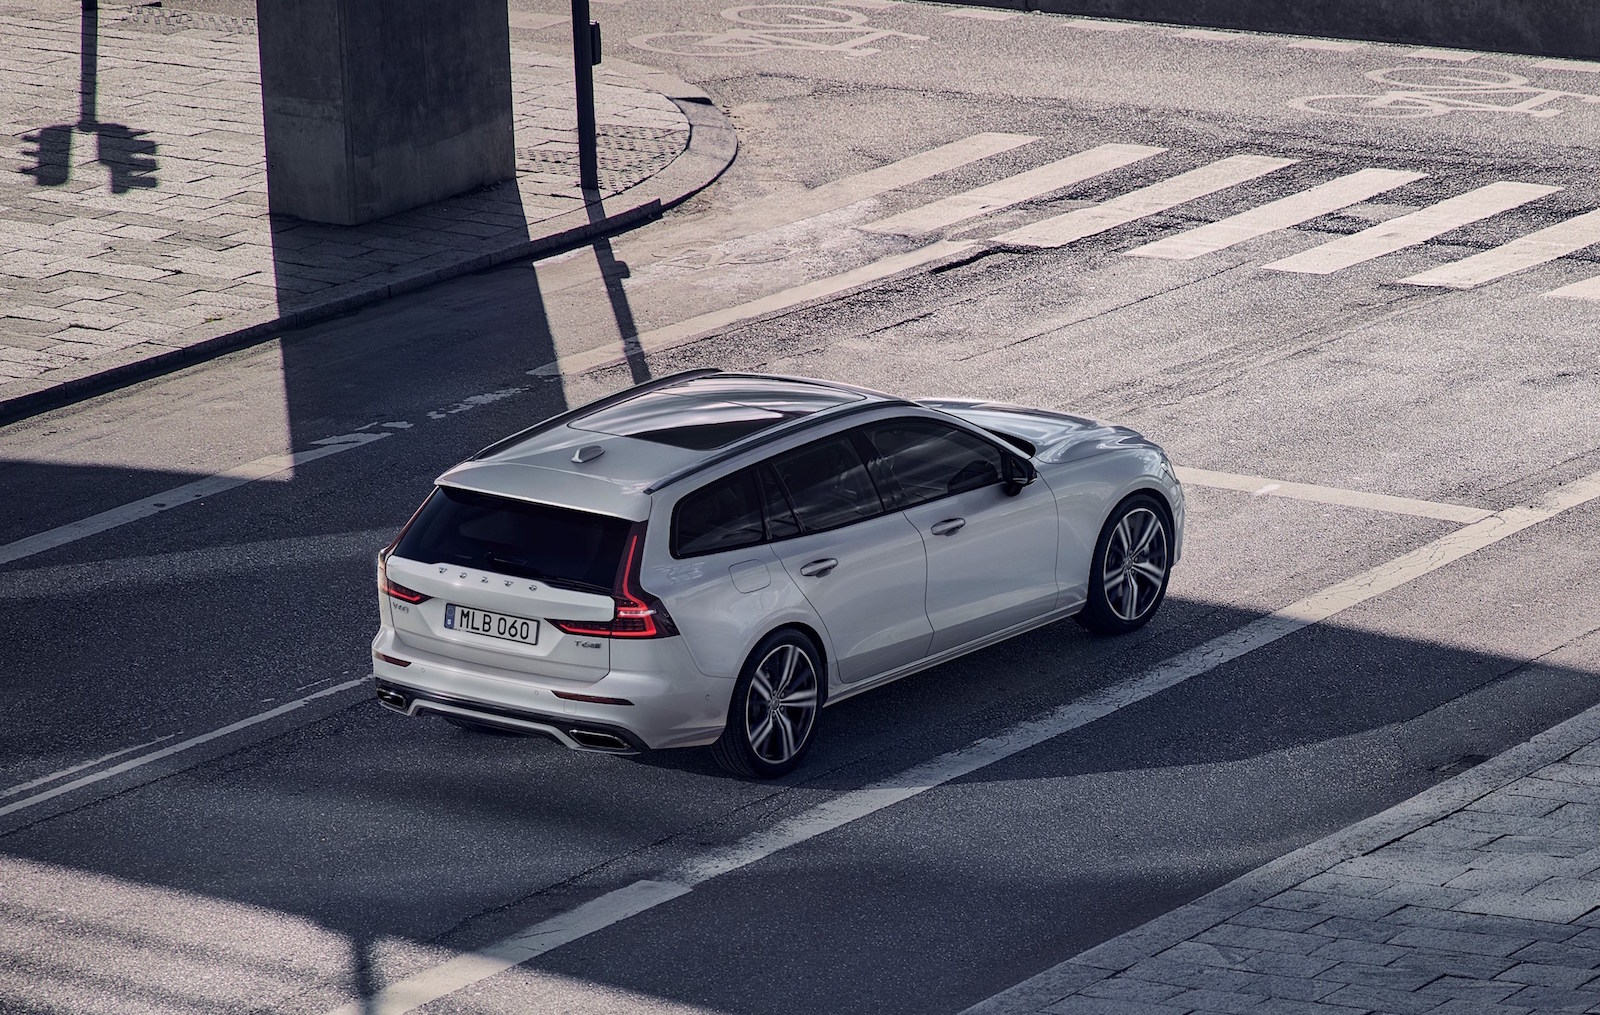 2019 Volvo V60 R-Design pack revealed, adds cool sporty character | PerformanceDrive